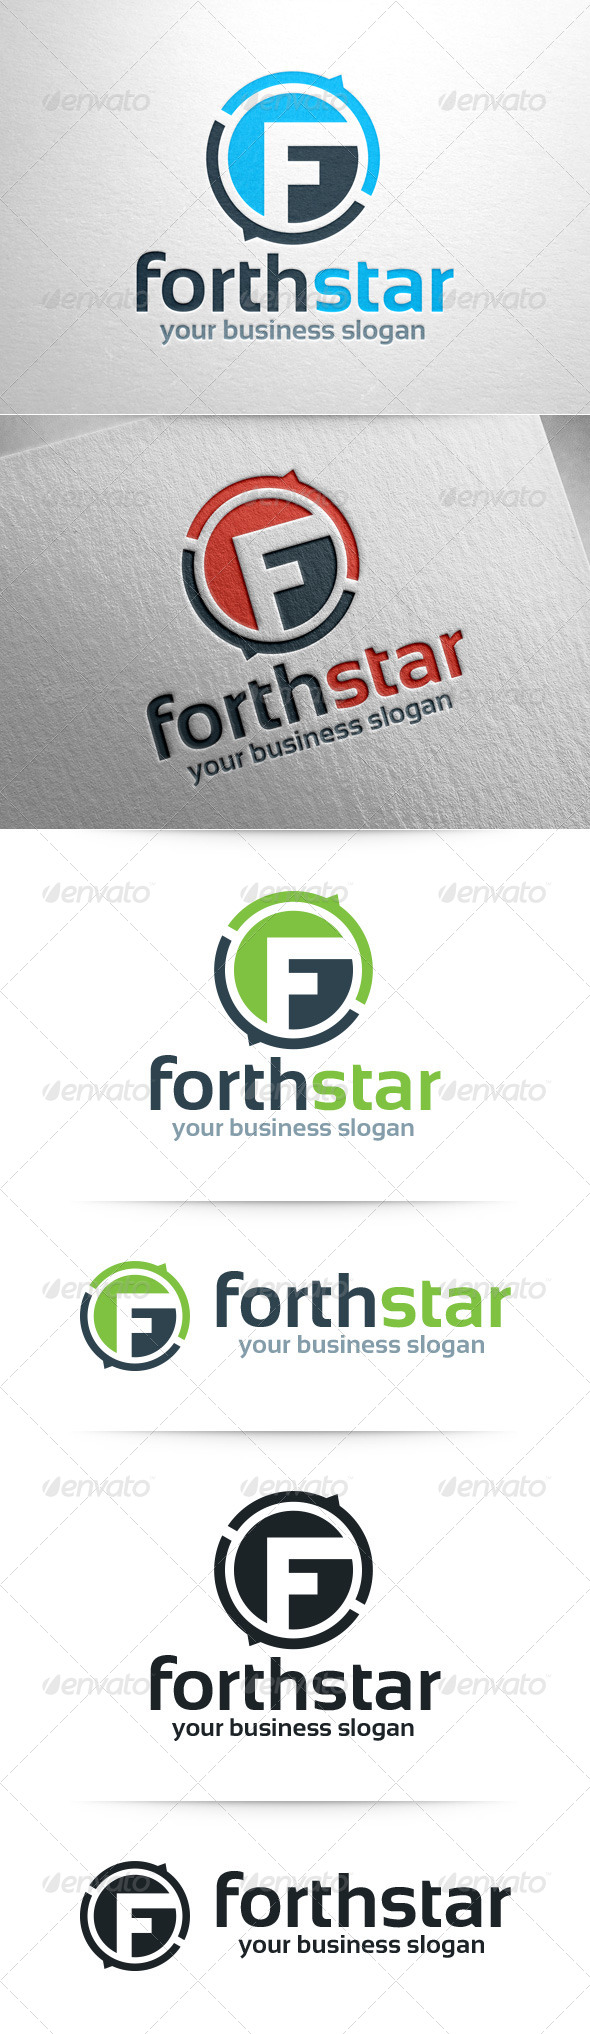 GraphicRiver Forthstar Letter F Logo Template 8102728